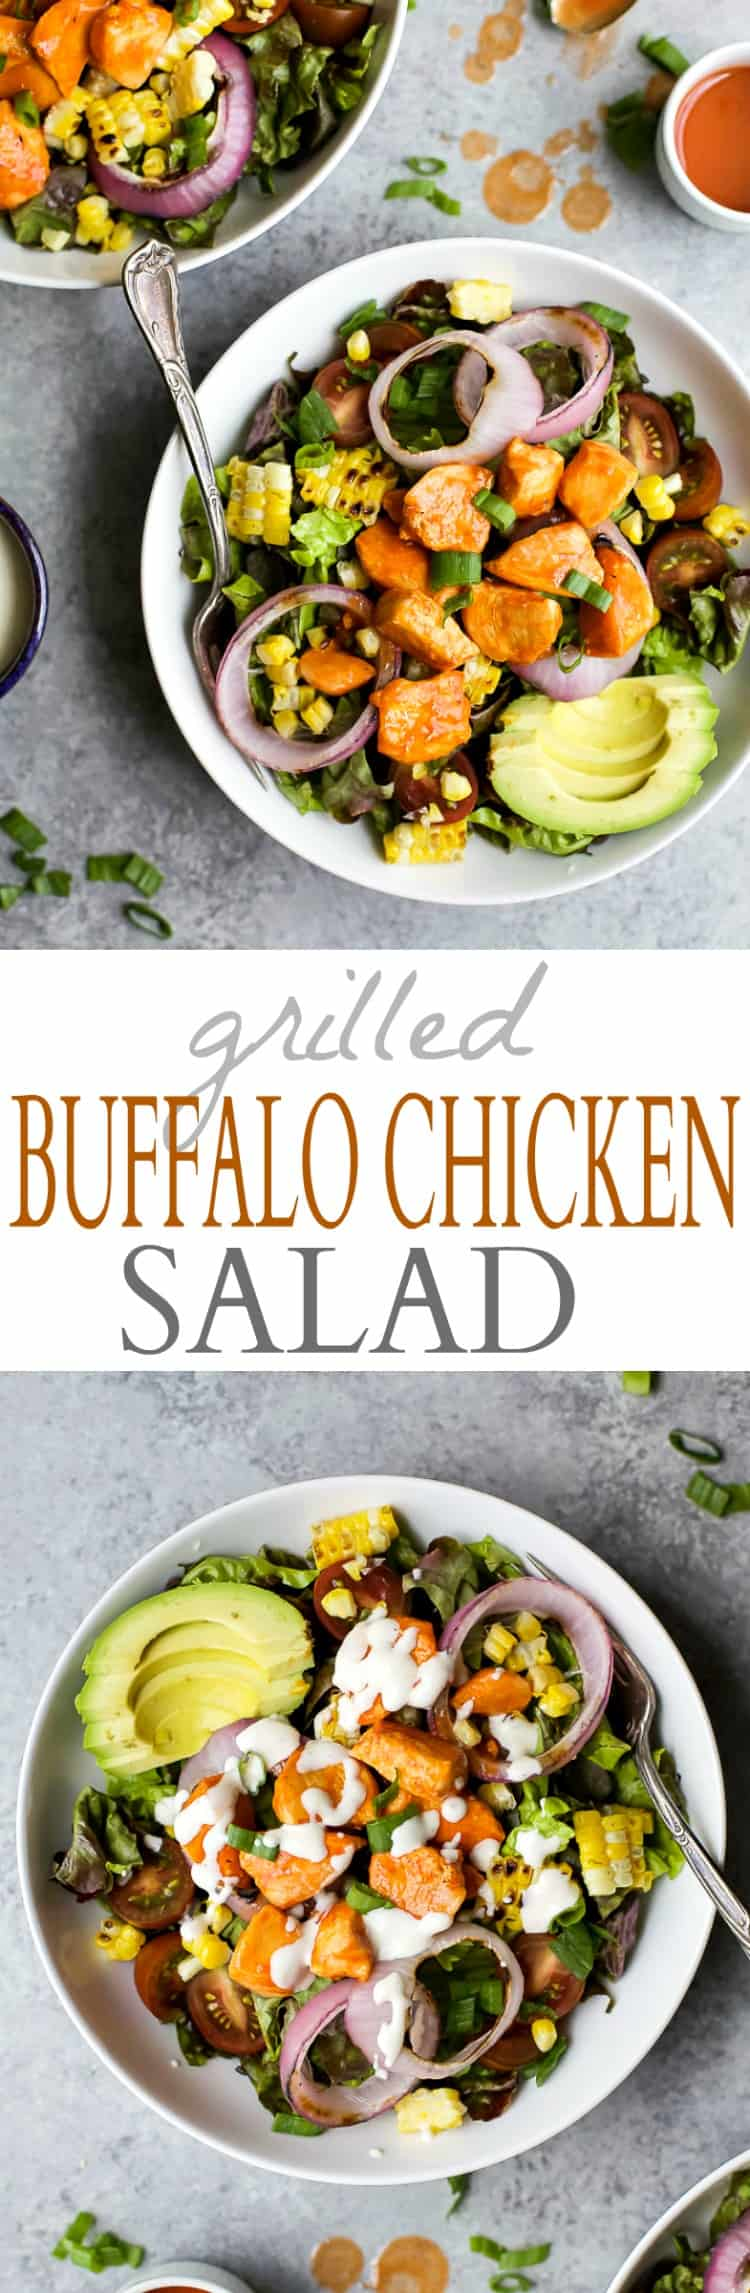 Recipe collage for Grilled Buffalo Chicken Salad